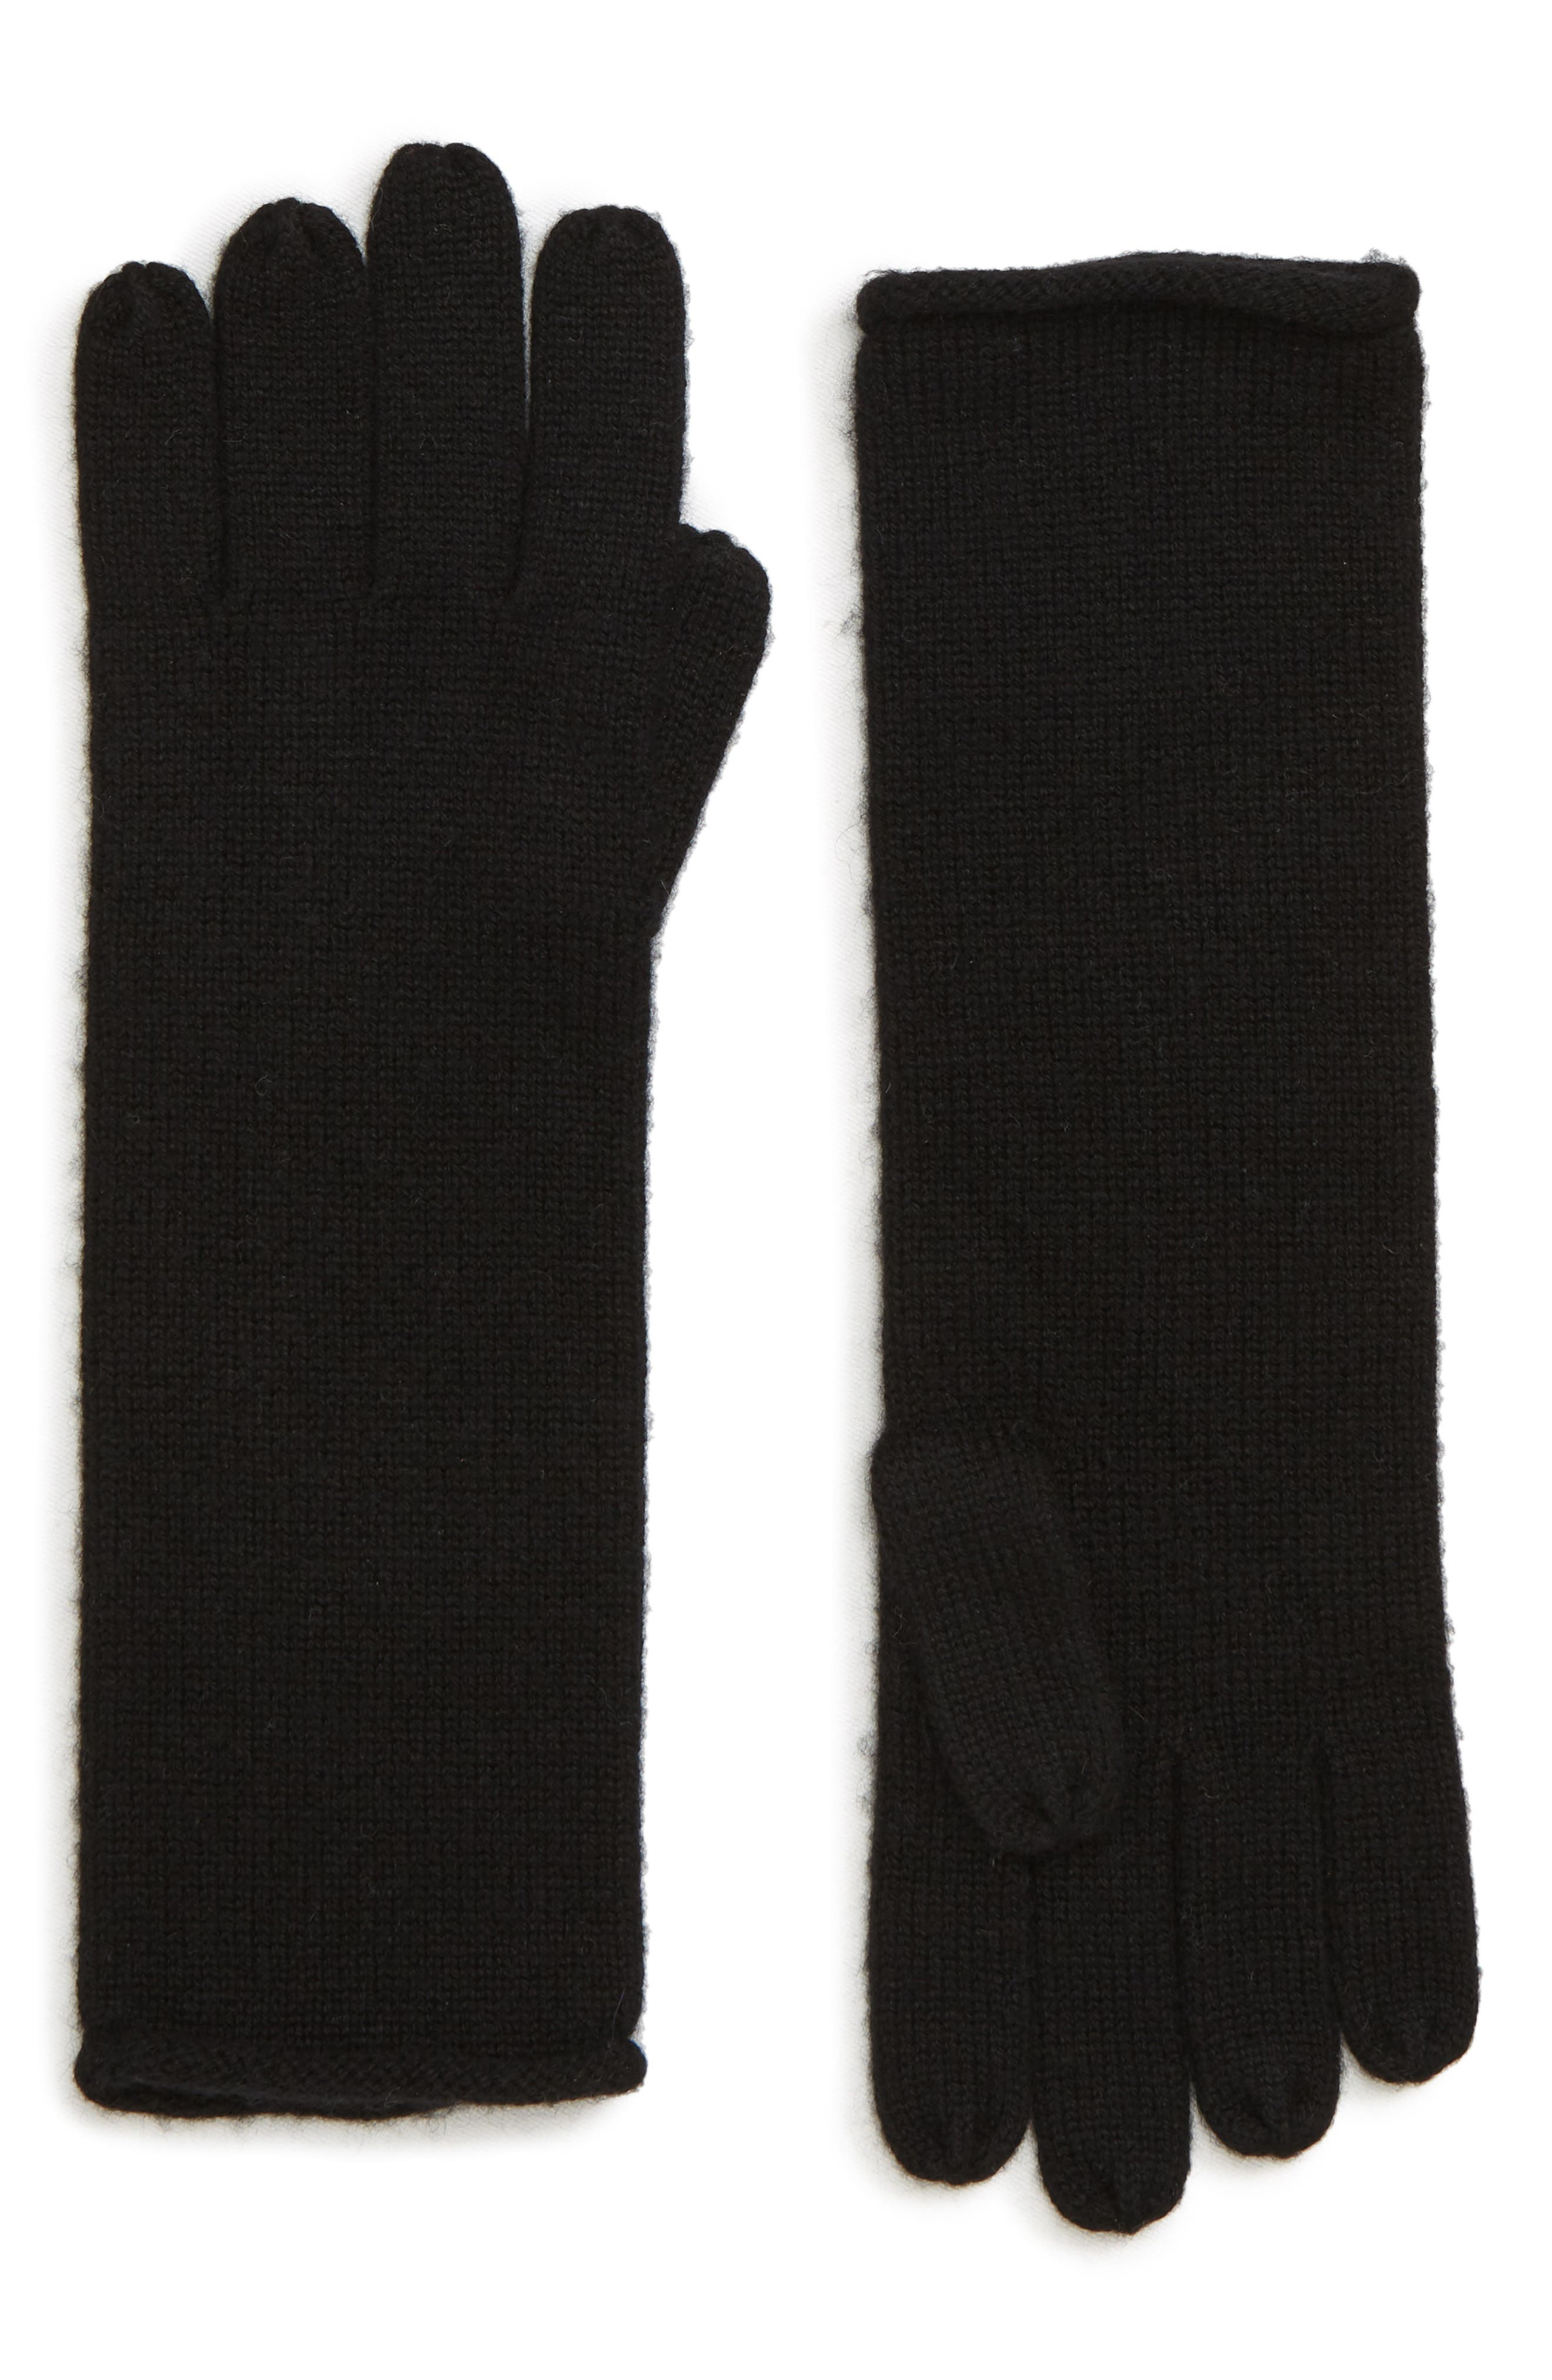 Rolled Edge Gloves,                         Main,                         color, BLACK